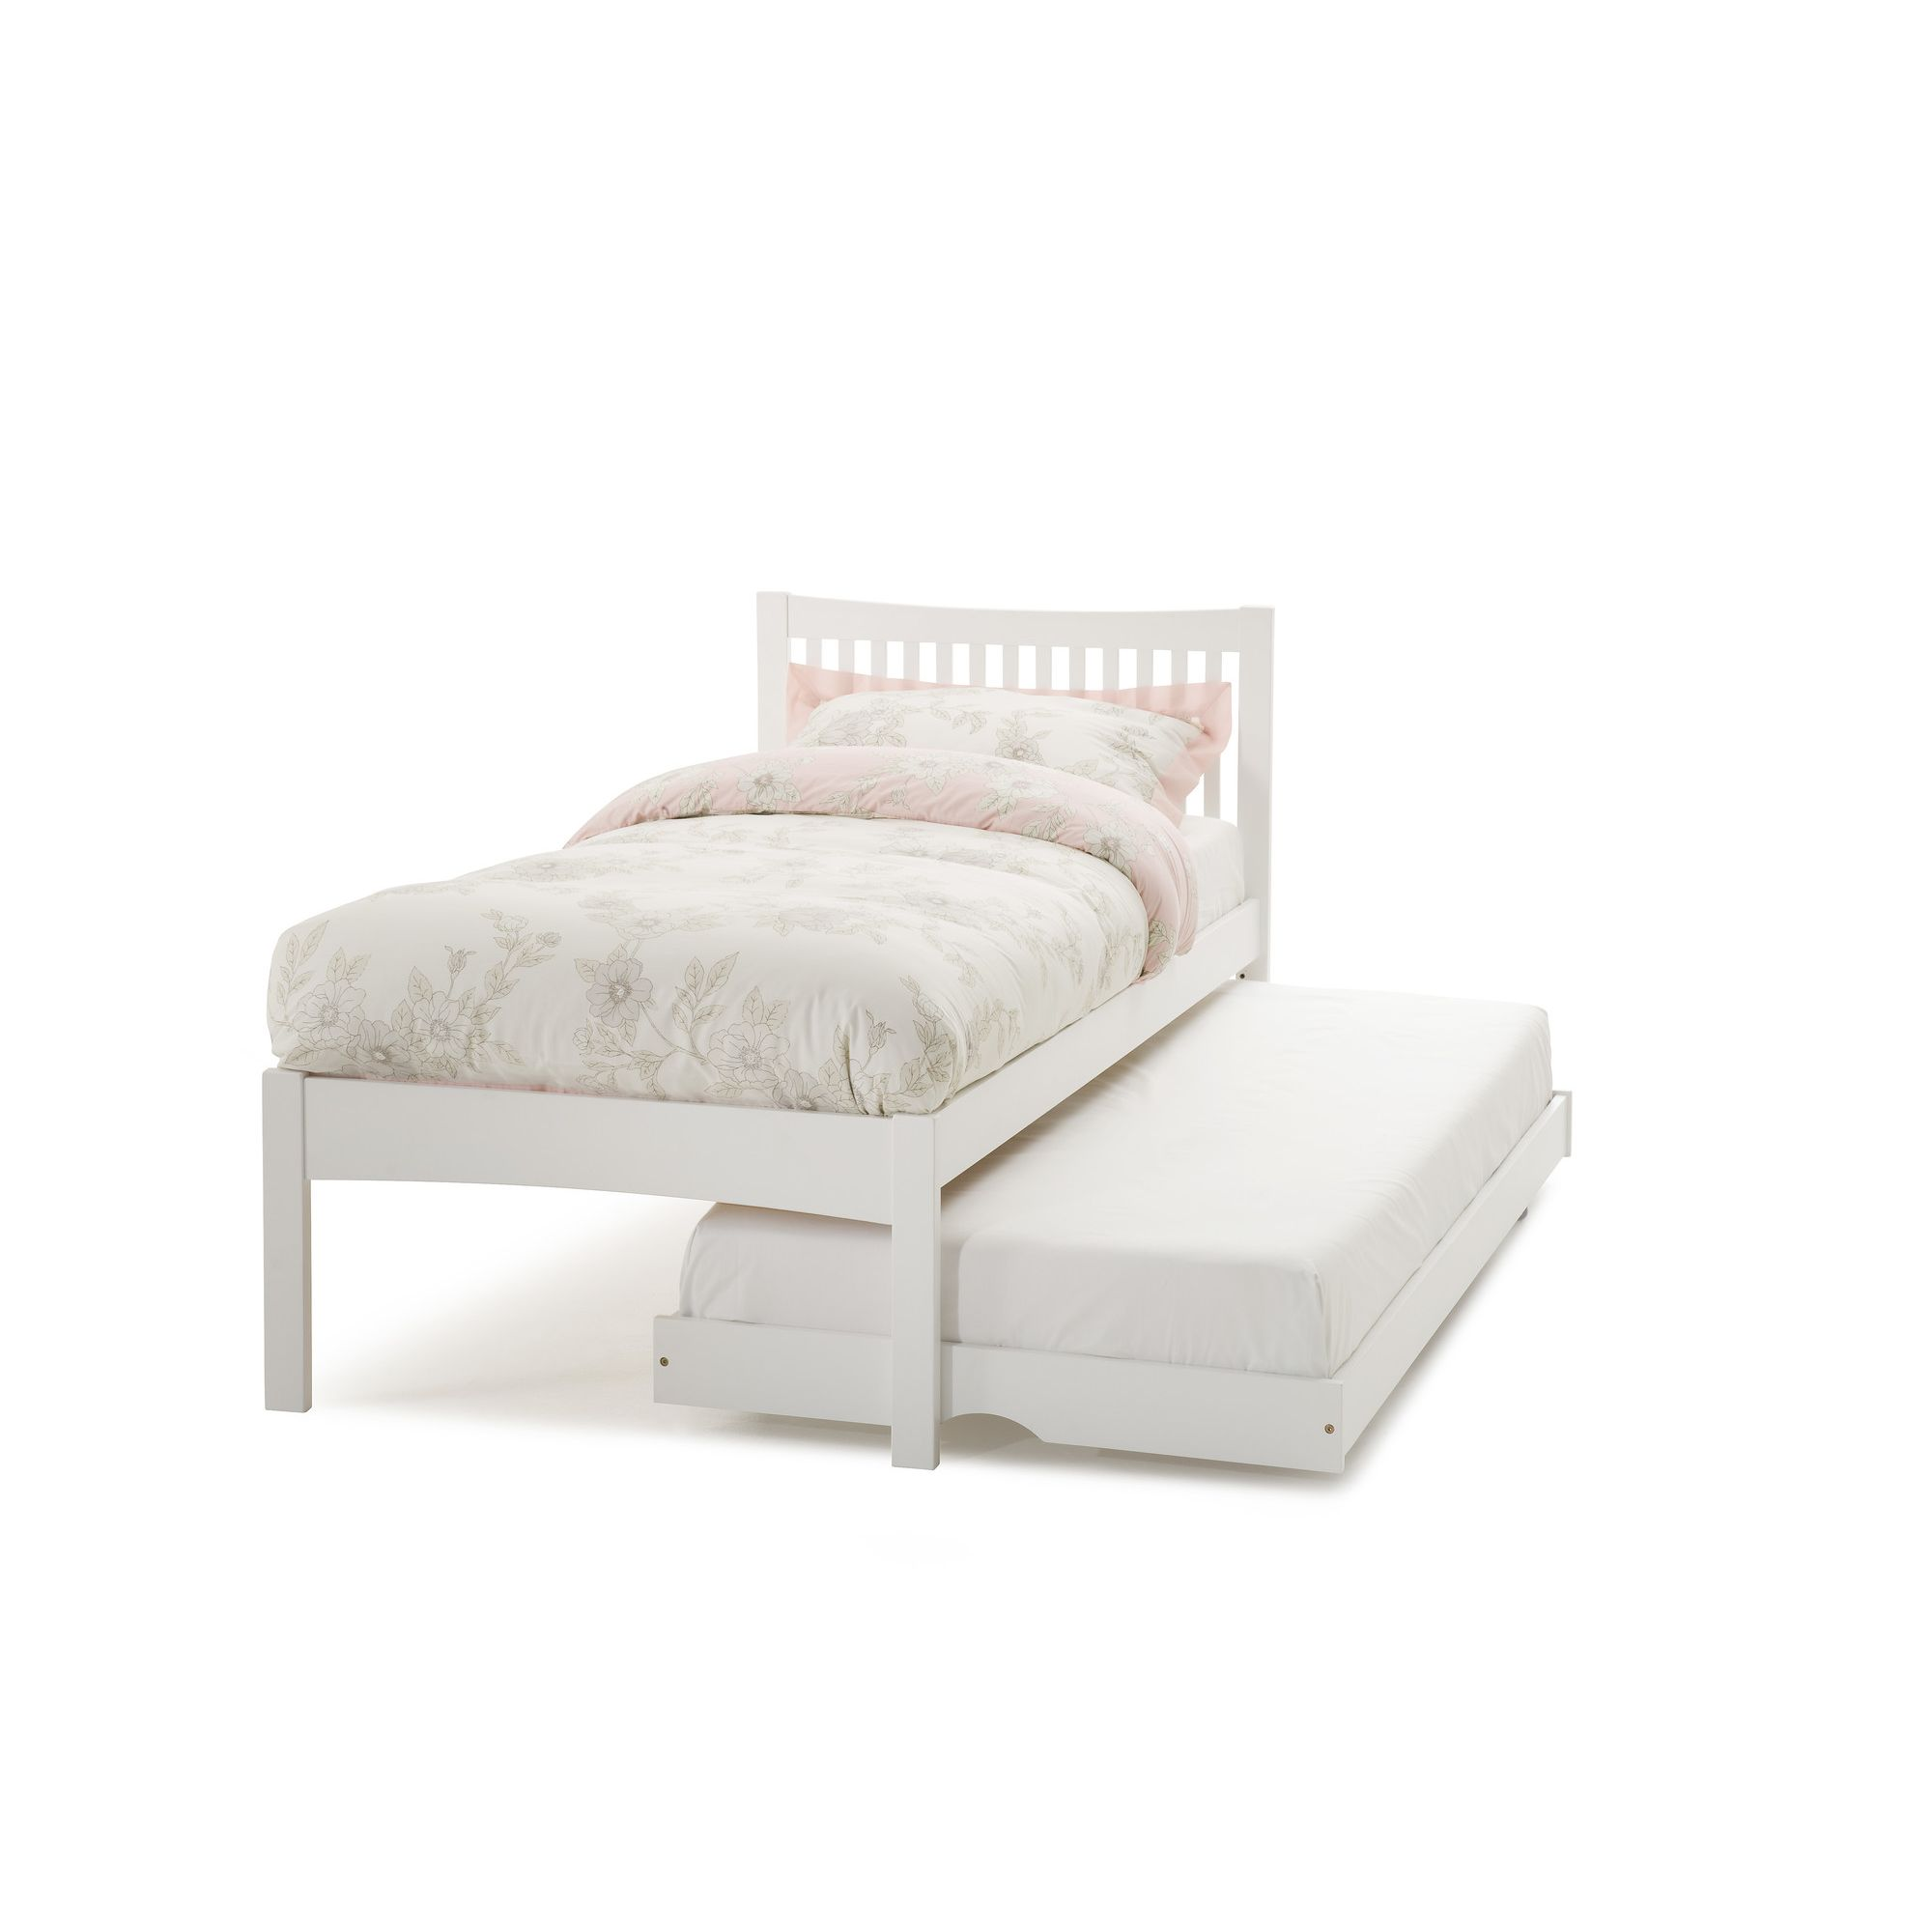 Serene Furnishings Mya Single Guest Bed - Opal White at Tesco Direct